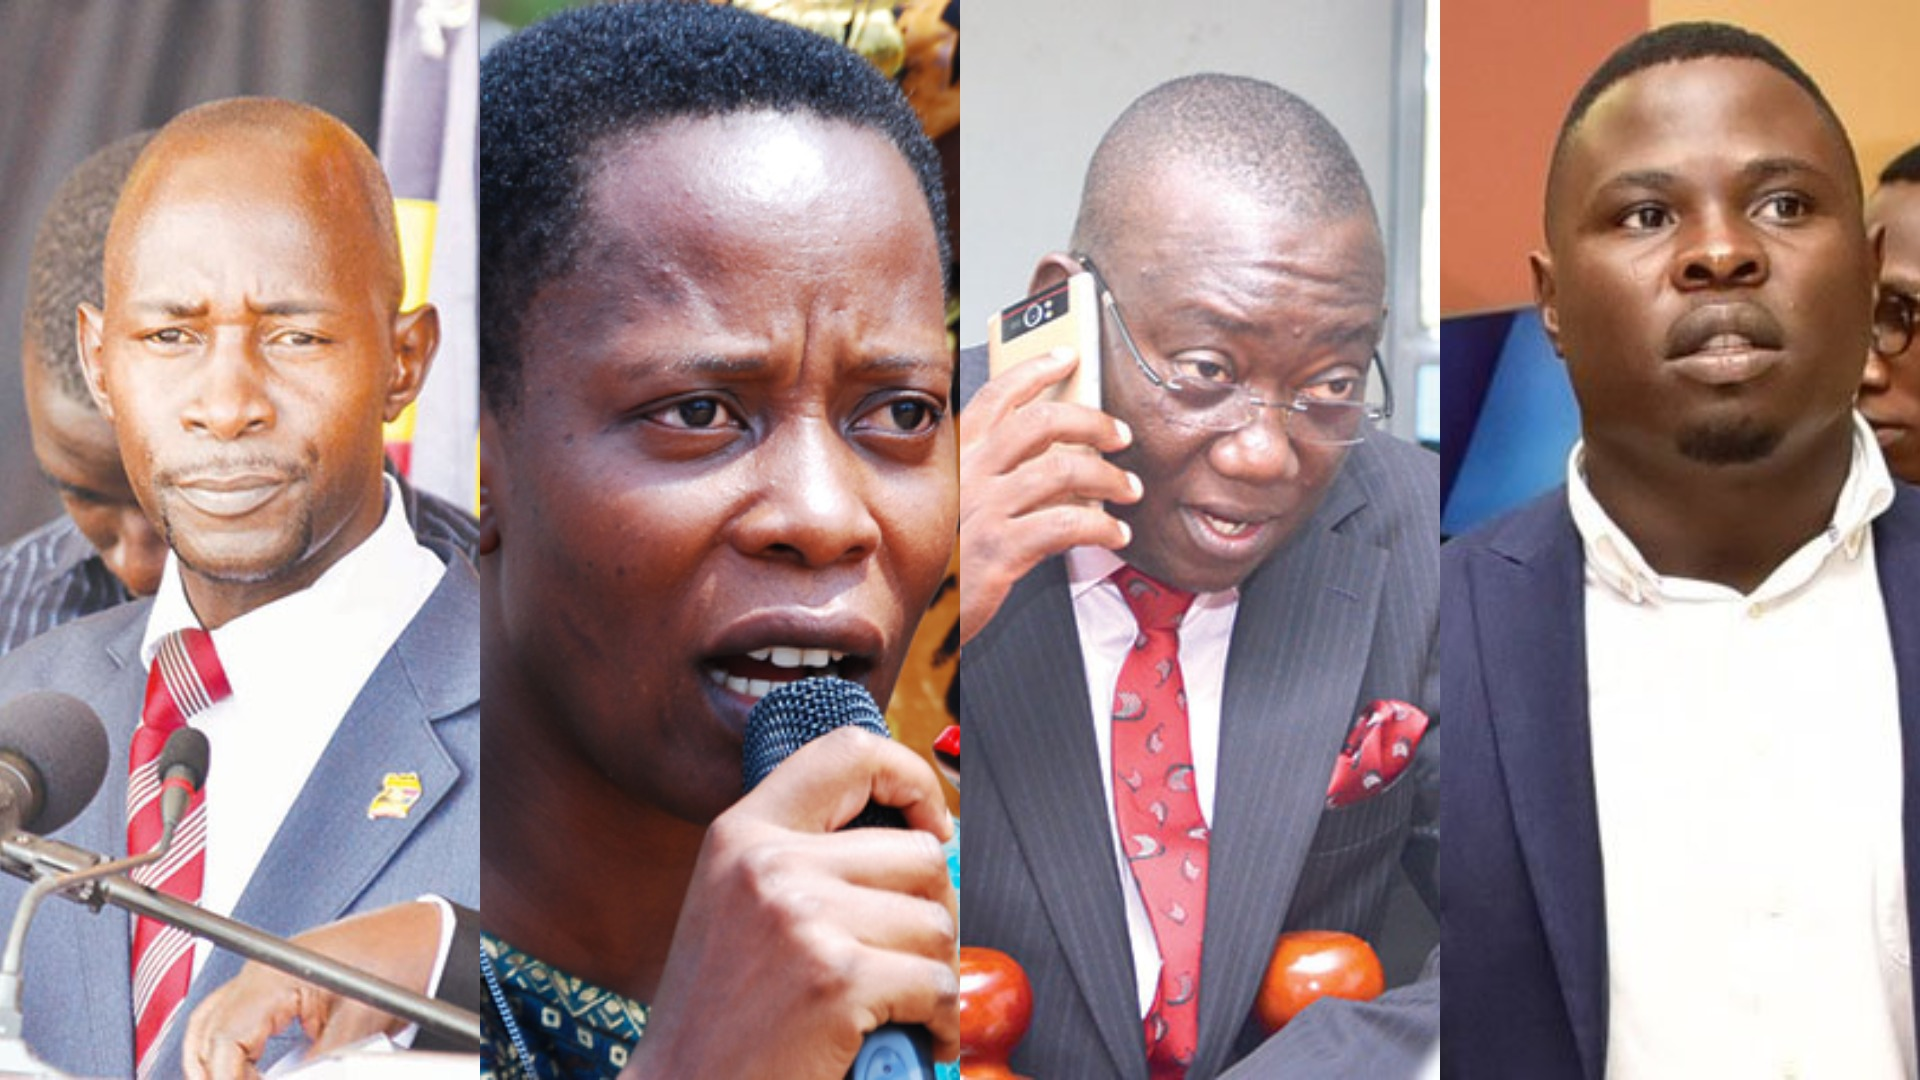 Leader of Opposition, Betty Aol has named her shadow cabinet with Paulson Lutamaguzi, Betty Nambooze, Kato Lubwama and Francis Zaake making list of the new shadow ministers (PML Daily PHOTO)